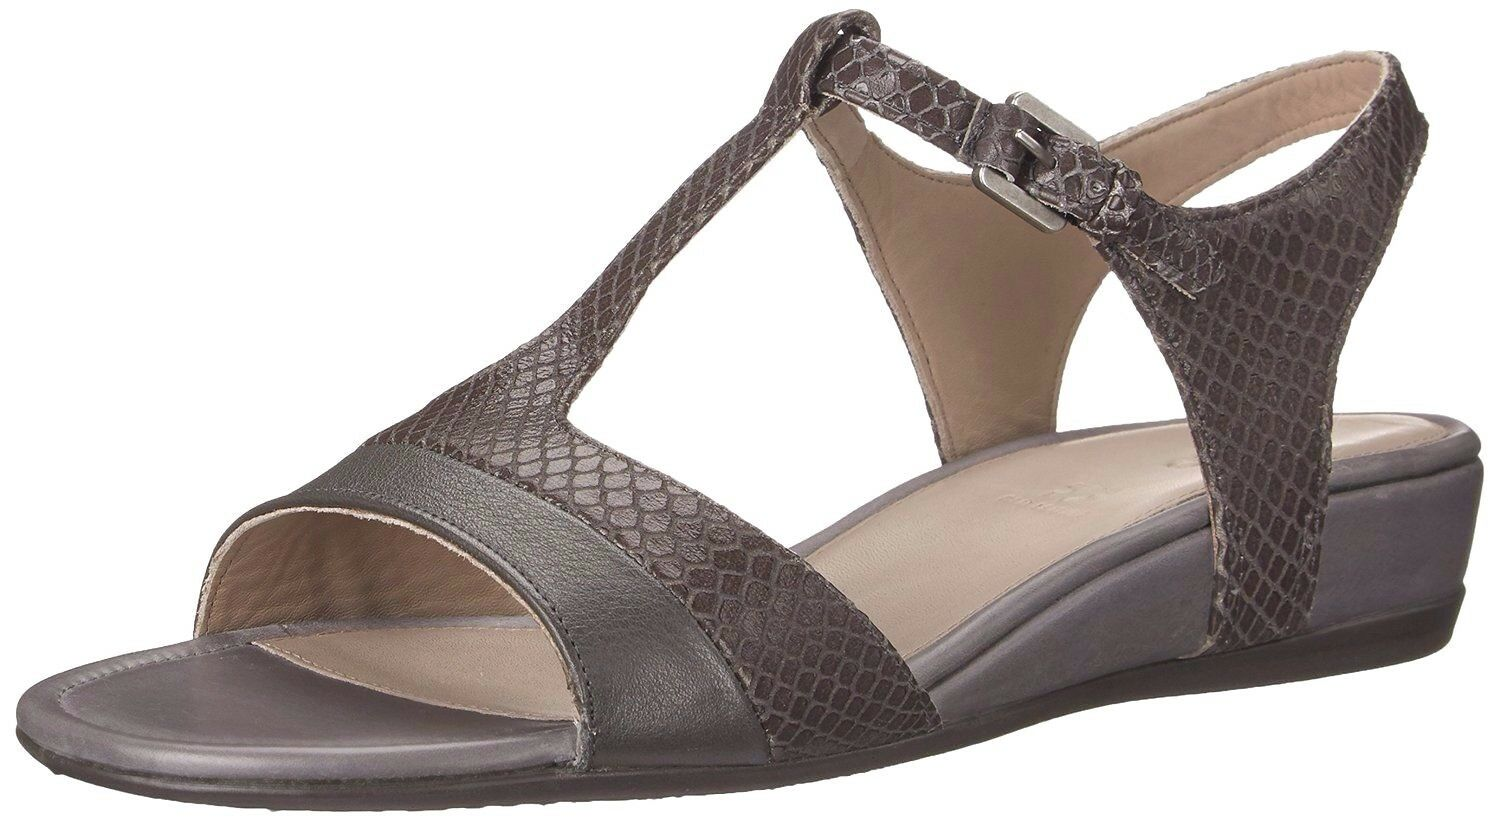 ECCO donna TOUCH 25 S SANDALS Snakeprint Ankle Strap Leather grigio EU 40,US 9-9.5